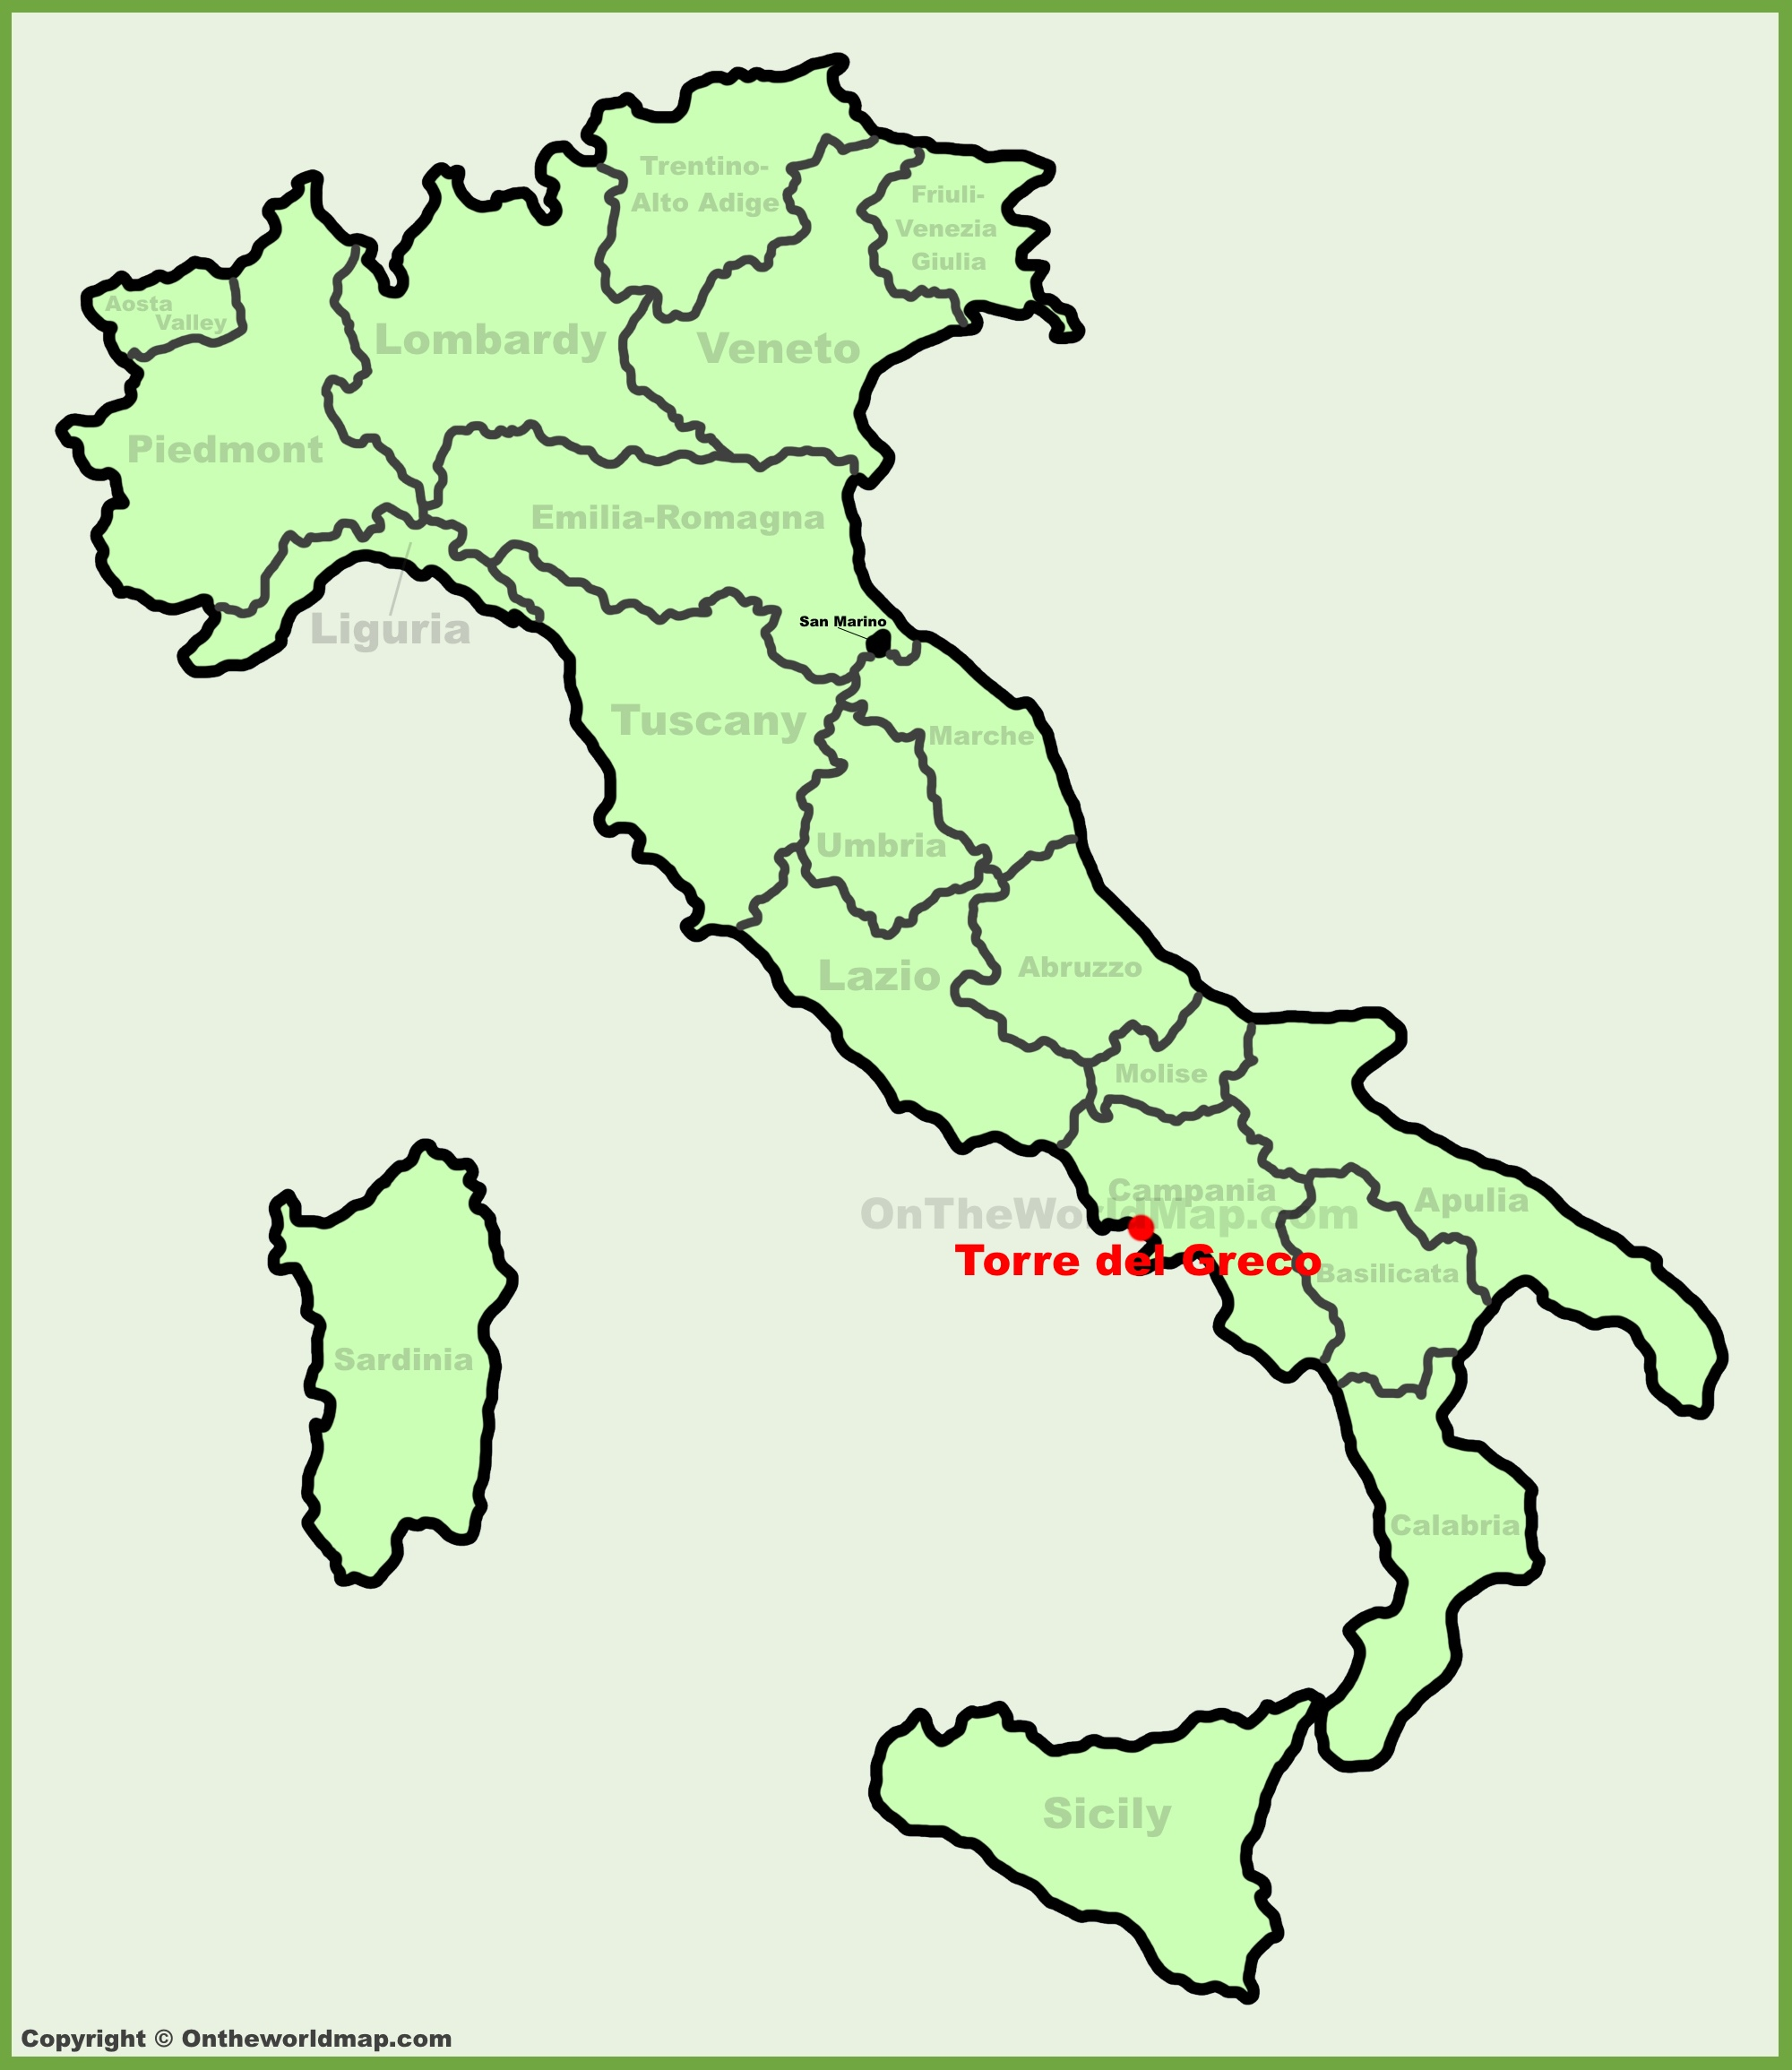 Torre del Greco location on the Italy map